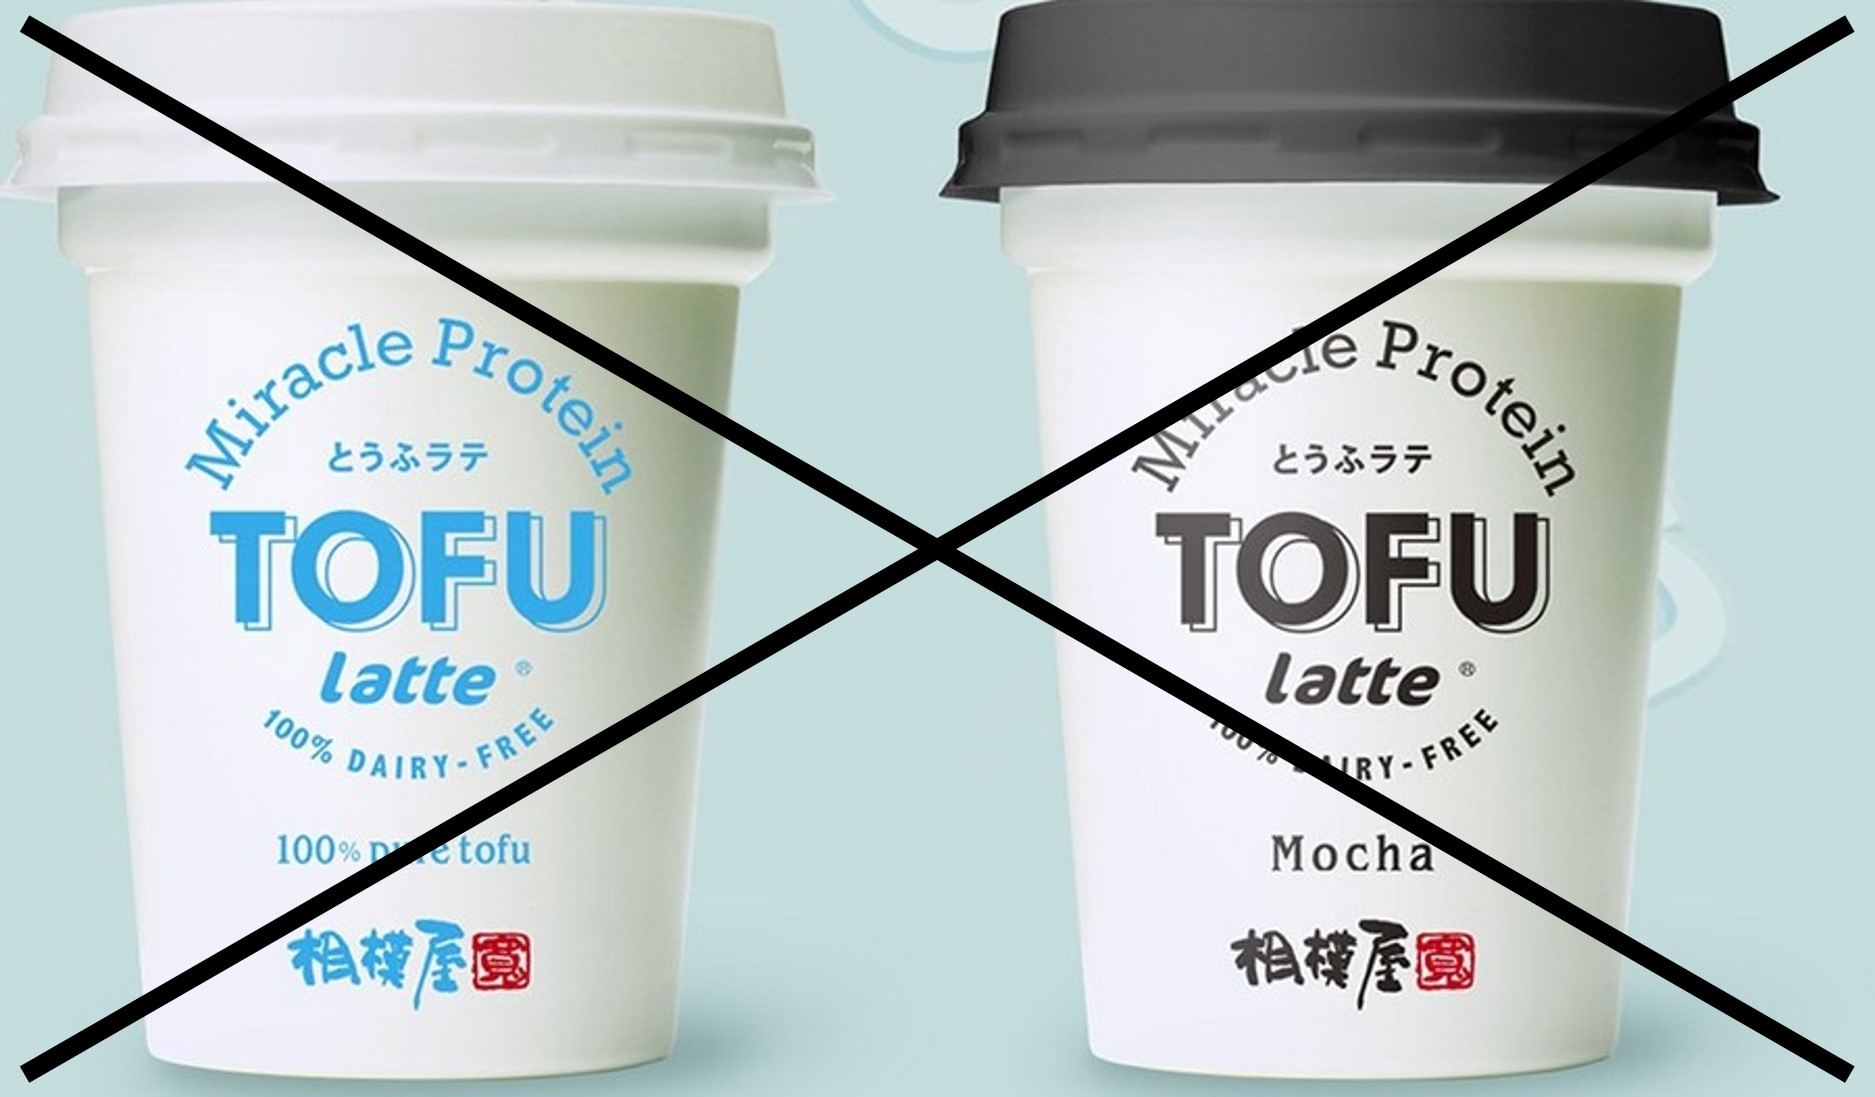 sagamiya tofu latte regular and mocha (2)